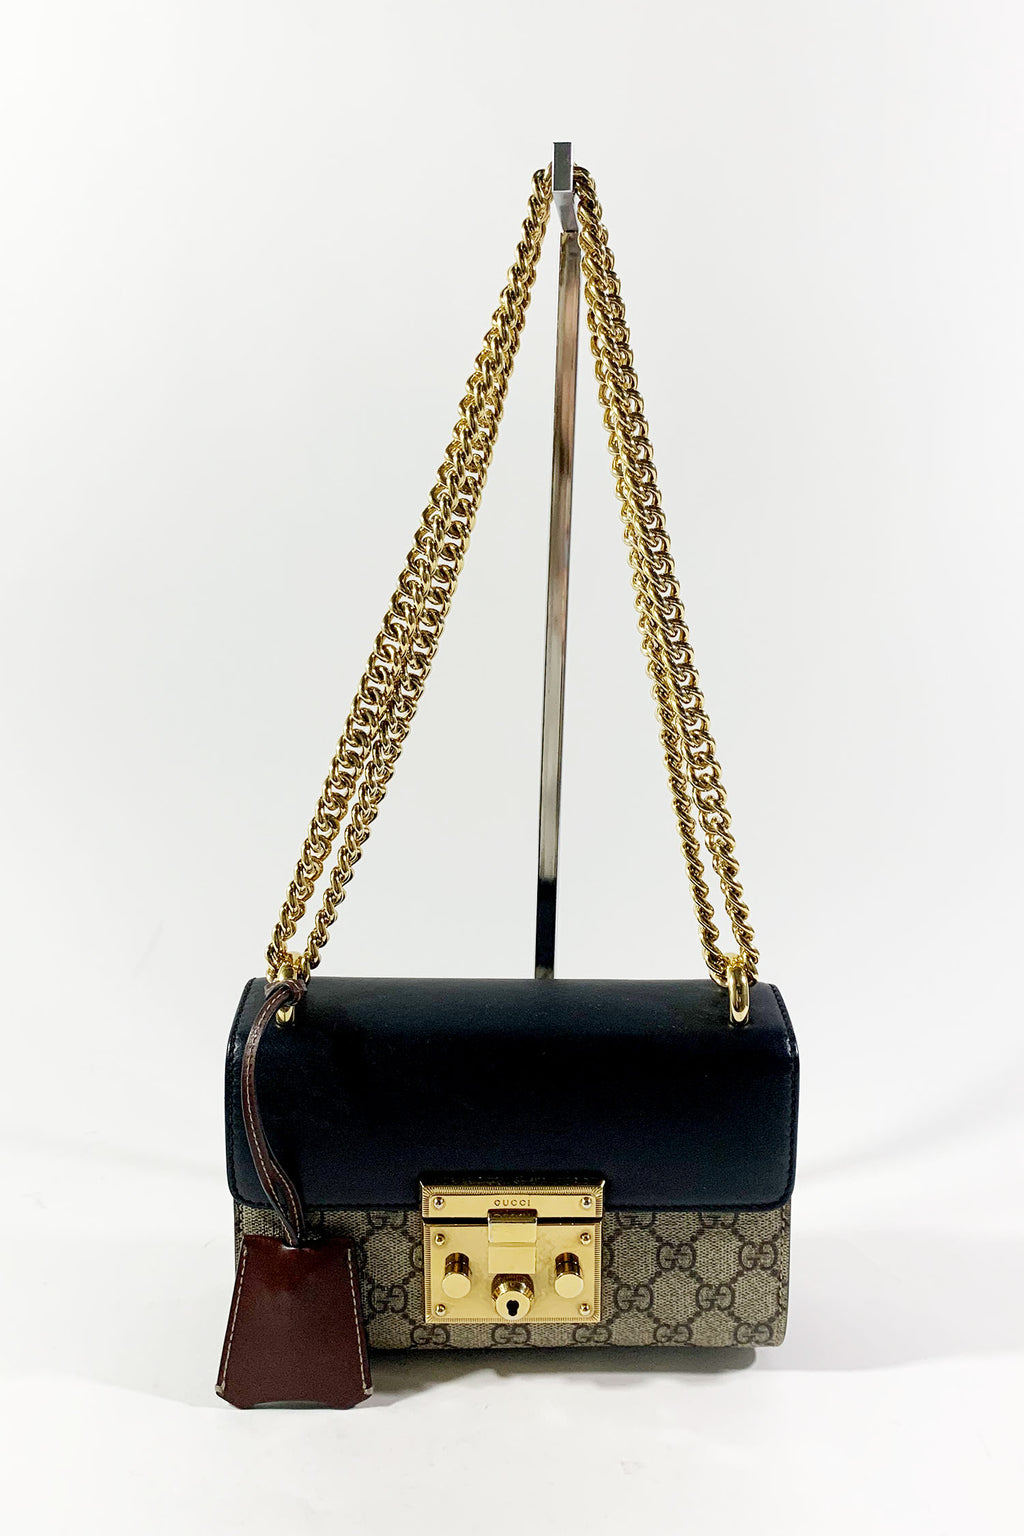 Gucci GG Supreme Small Padlock Shoulder Bag